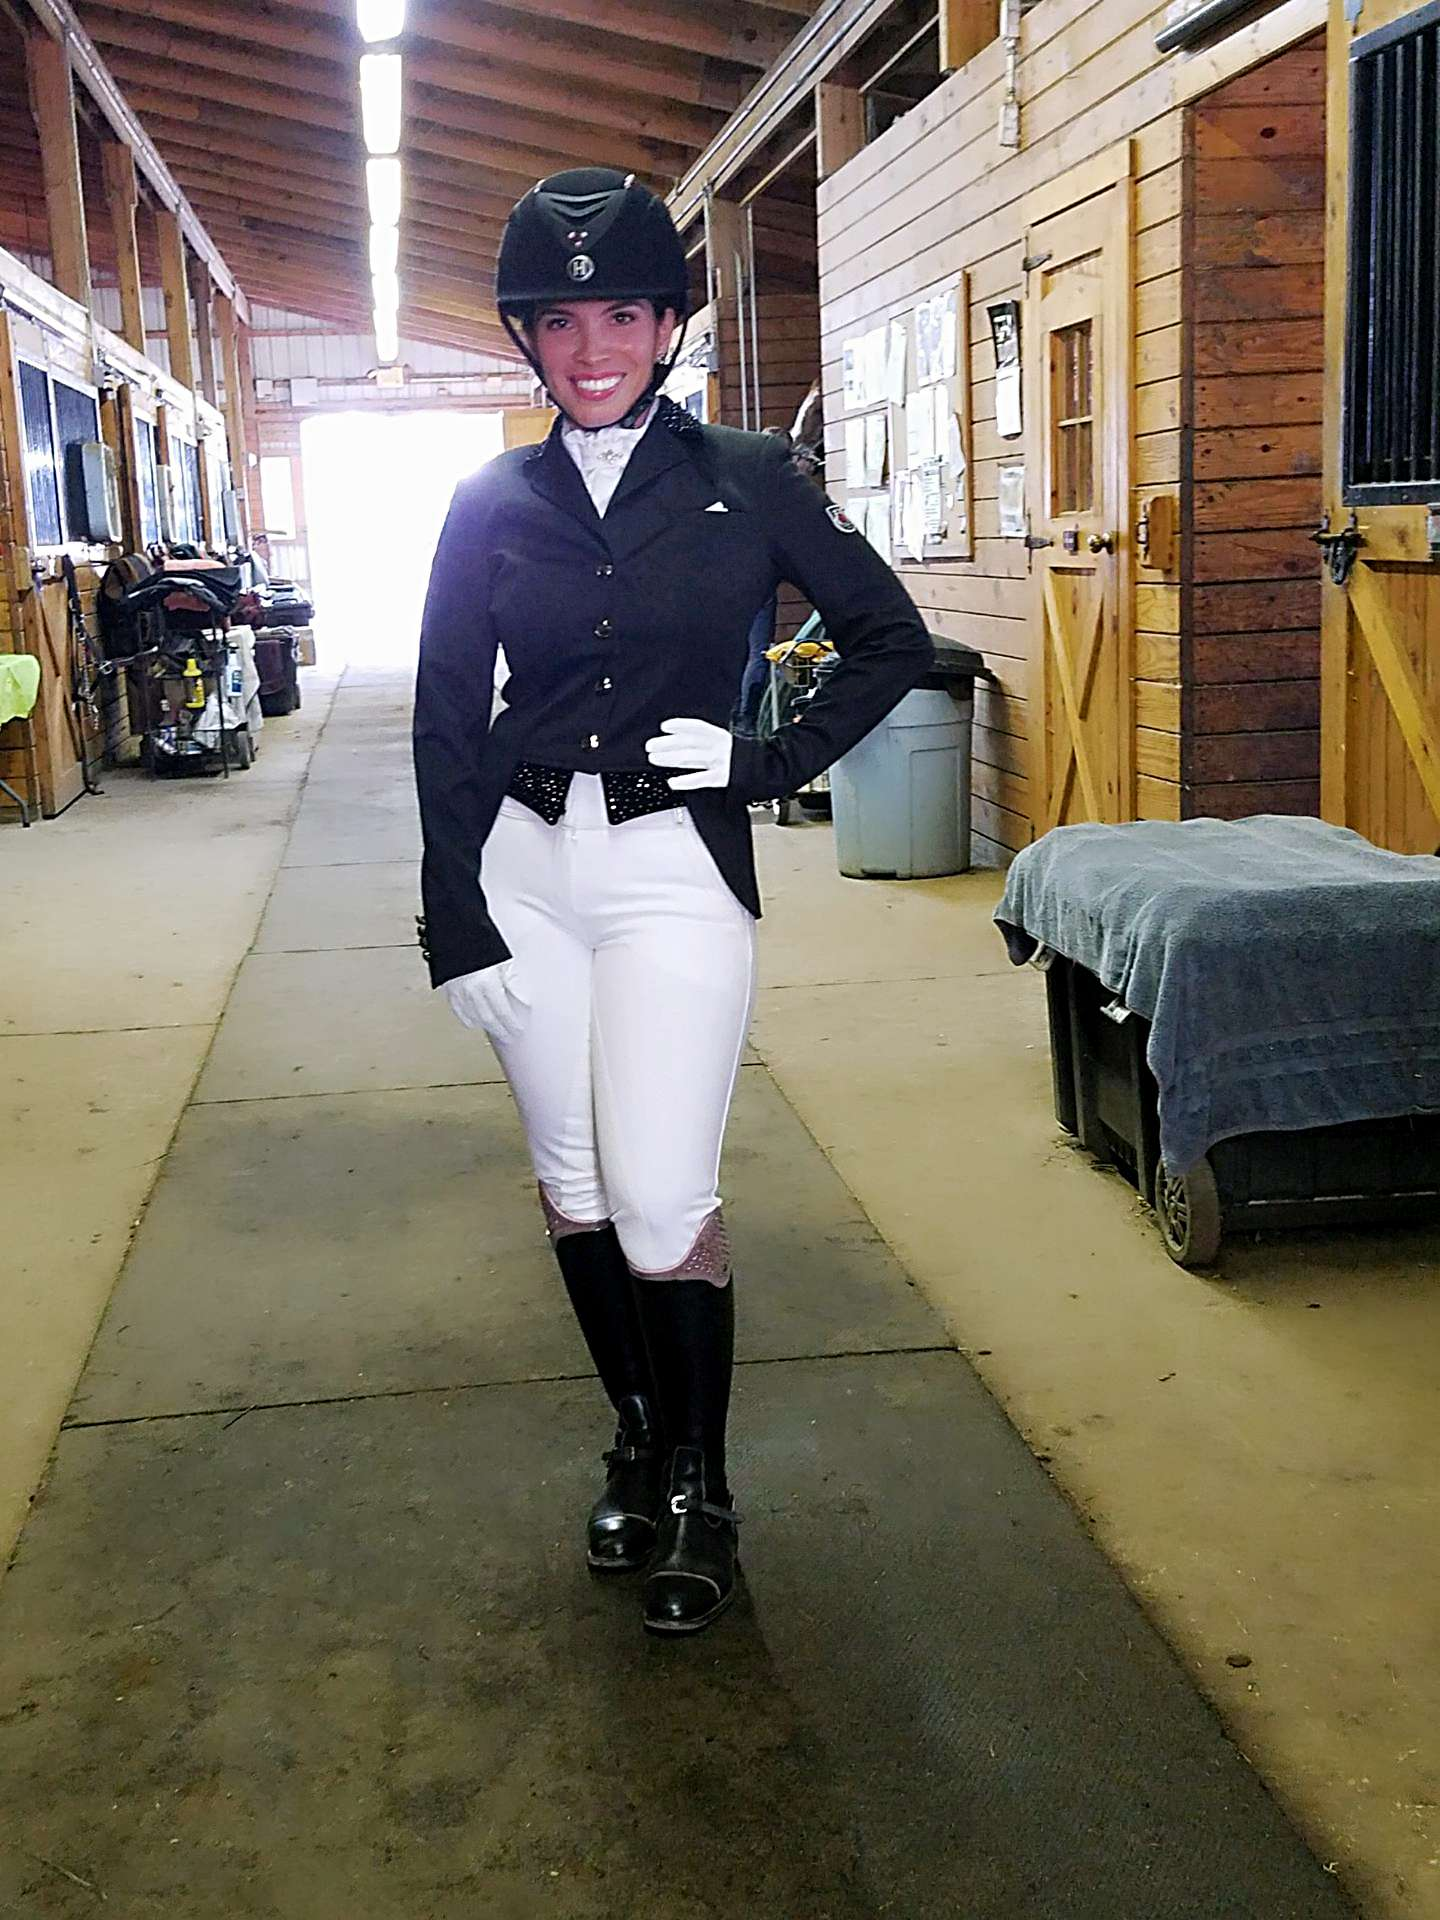 Shirley dressage outfit